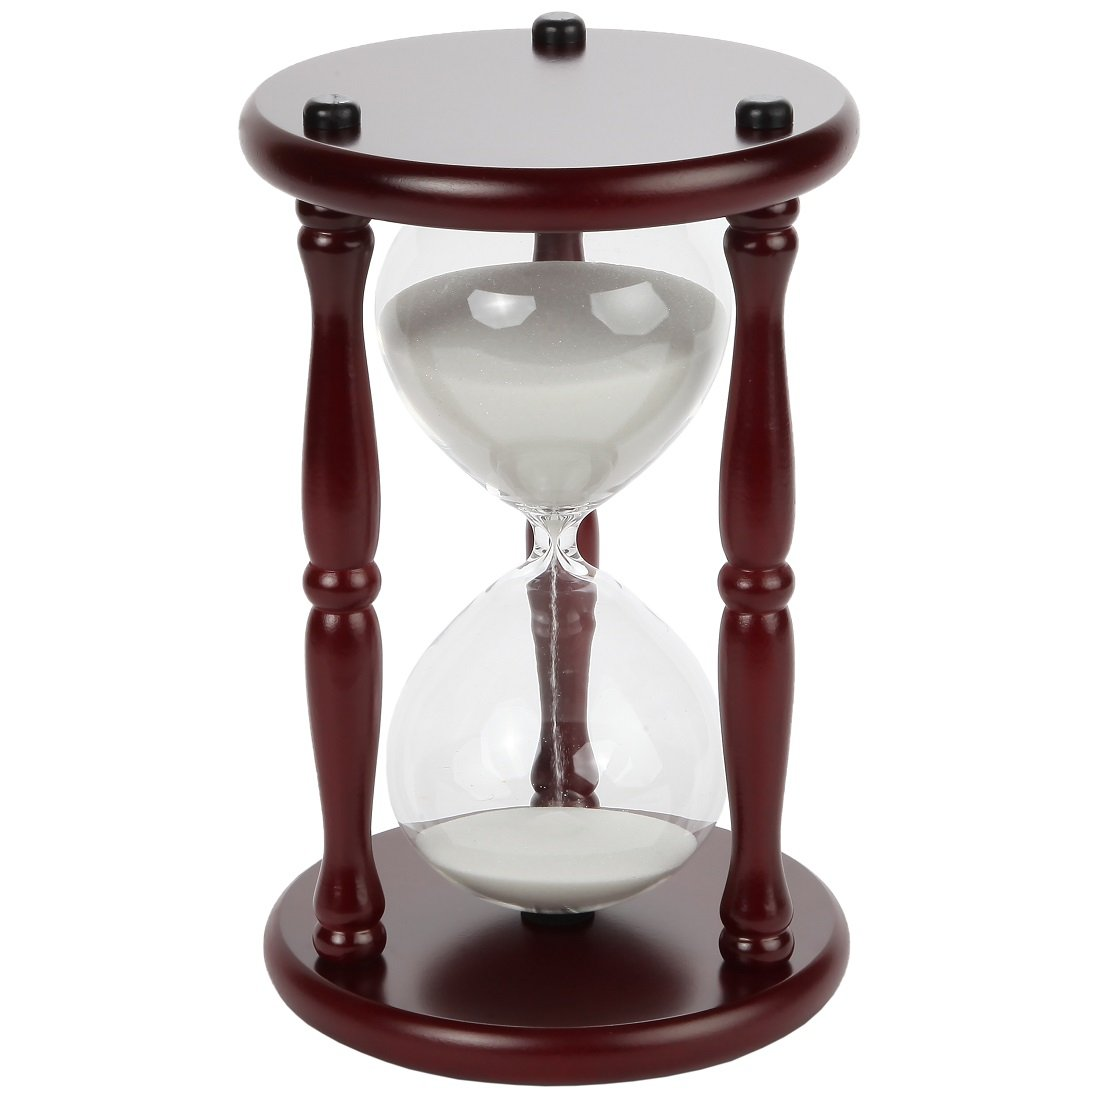 Lilys Home Hourglass Timer 60 Minute Cherry Wood Sand Clock 95 5 8211 30 Inch Kitchen